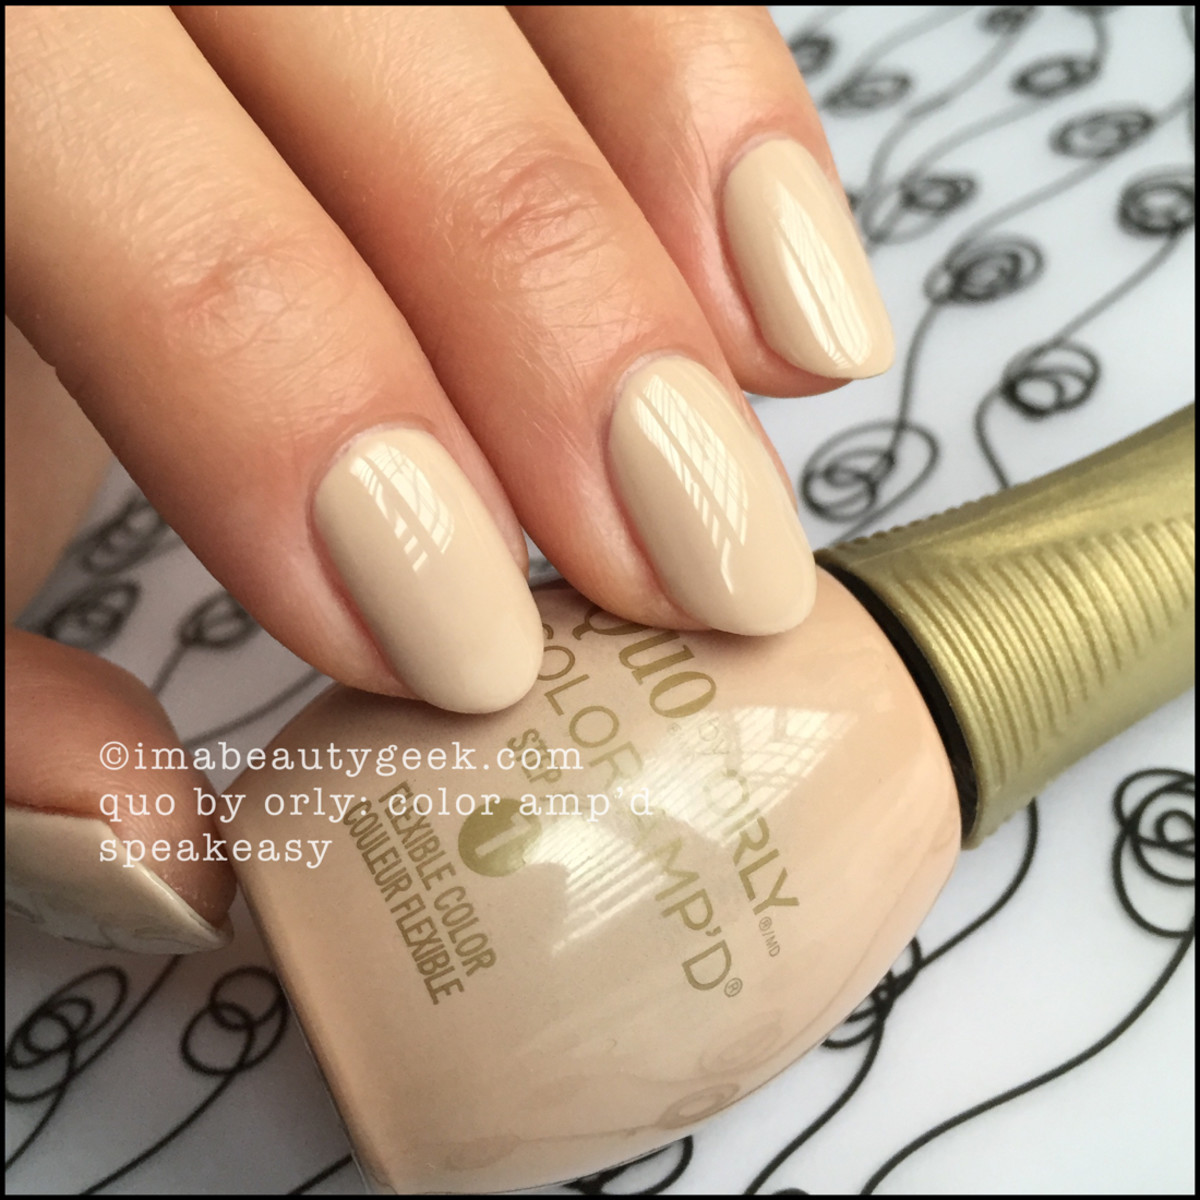 Quo by Orly Speakeasy_Orly Epix Swatches